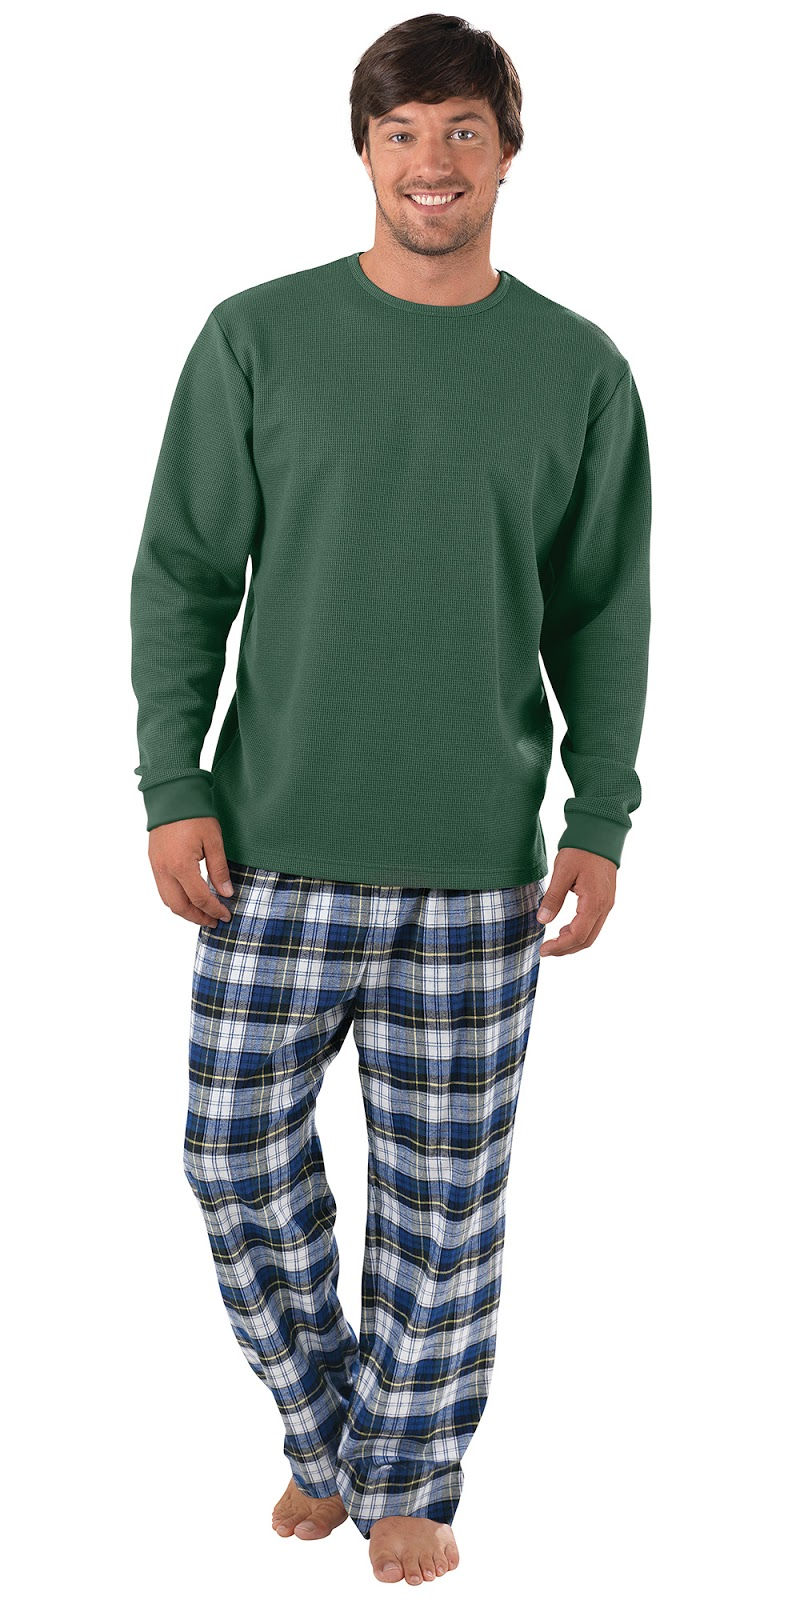 Shop for Mens Sleepwear & Robes in Men. Buy products such as Men's 2-Piece Fleece Sleep Set, Men's Flannel Pajama Set, Big Men's Knit Sleep Pant at Walmart and save.